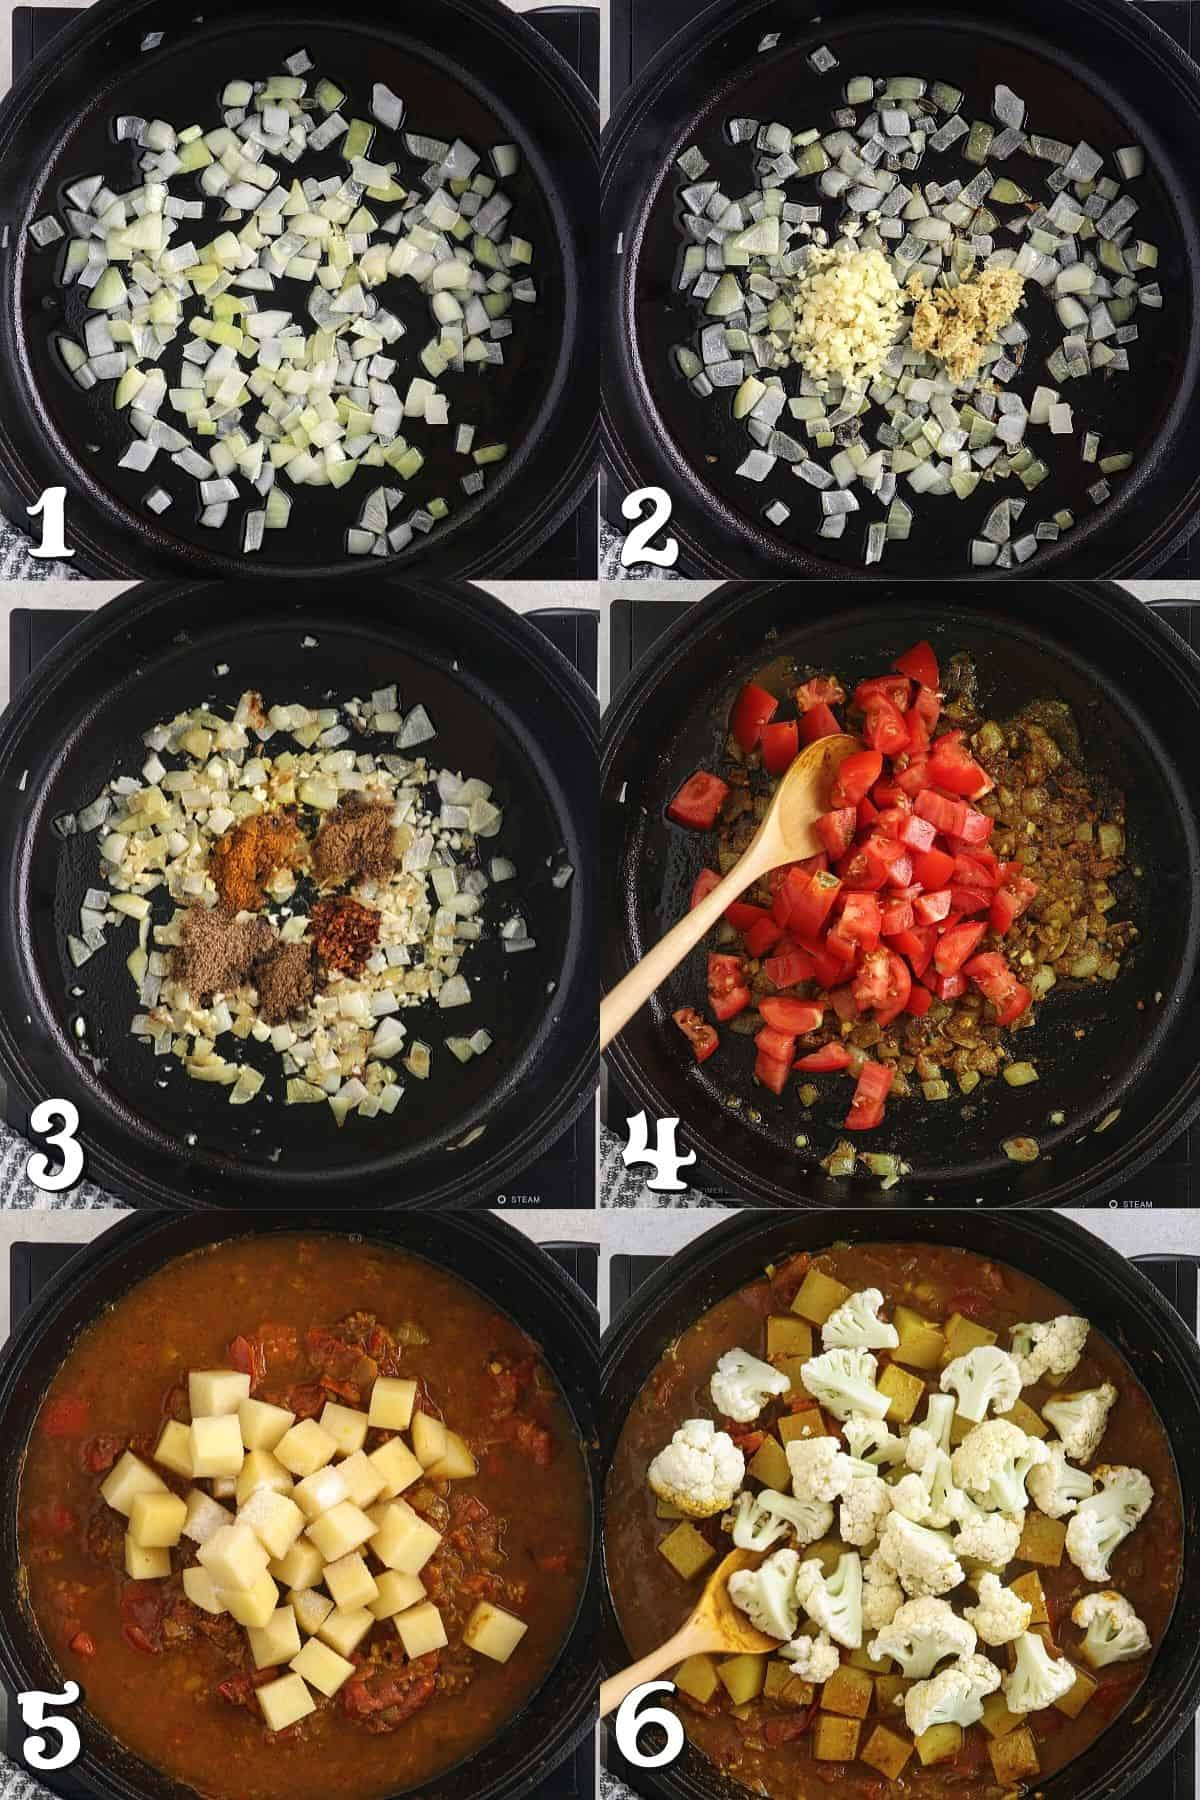 6 step-by-step process photos showing how to cook the recipe in a pan.